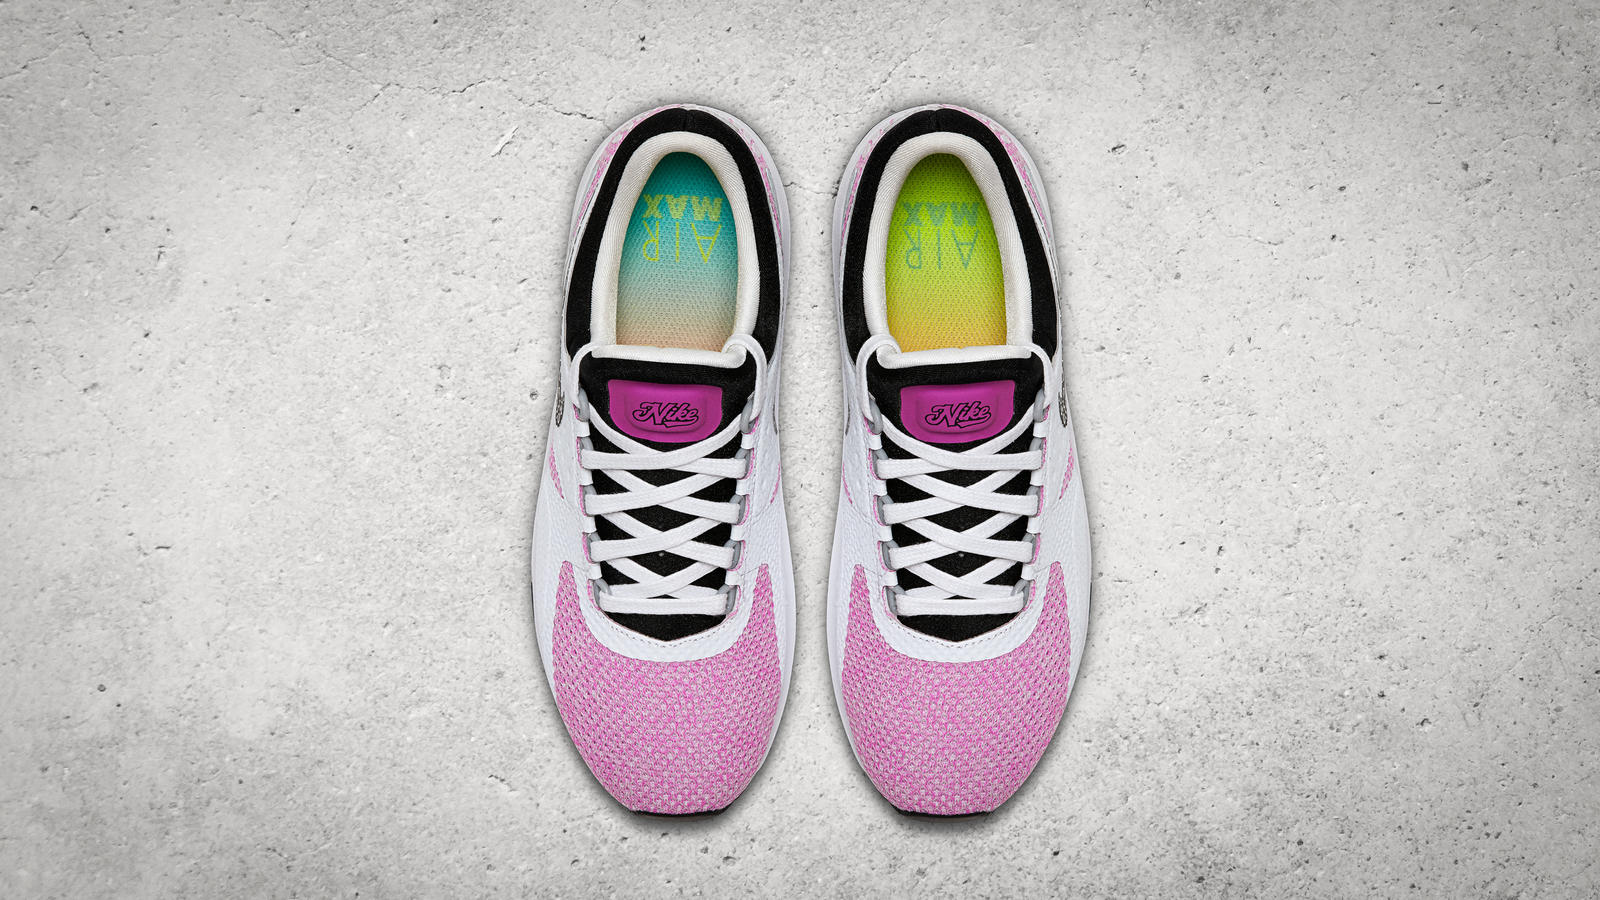 save off 9b102 59694 Air Max Day Build-Up Continues With Release of Imaginairs ...